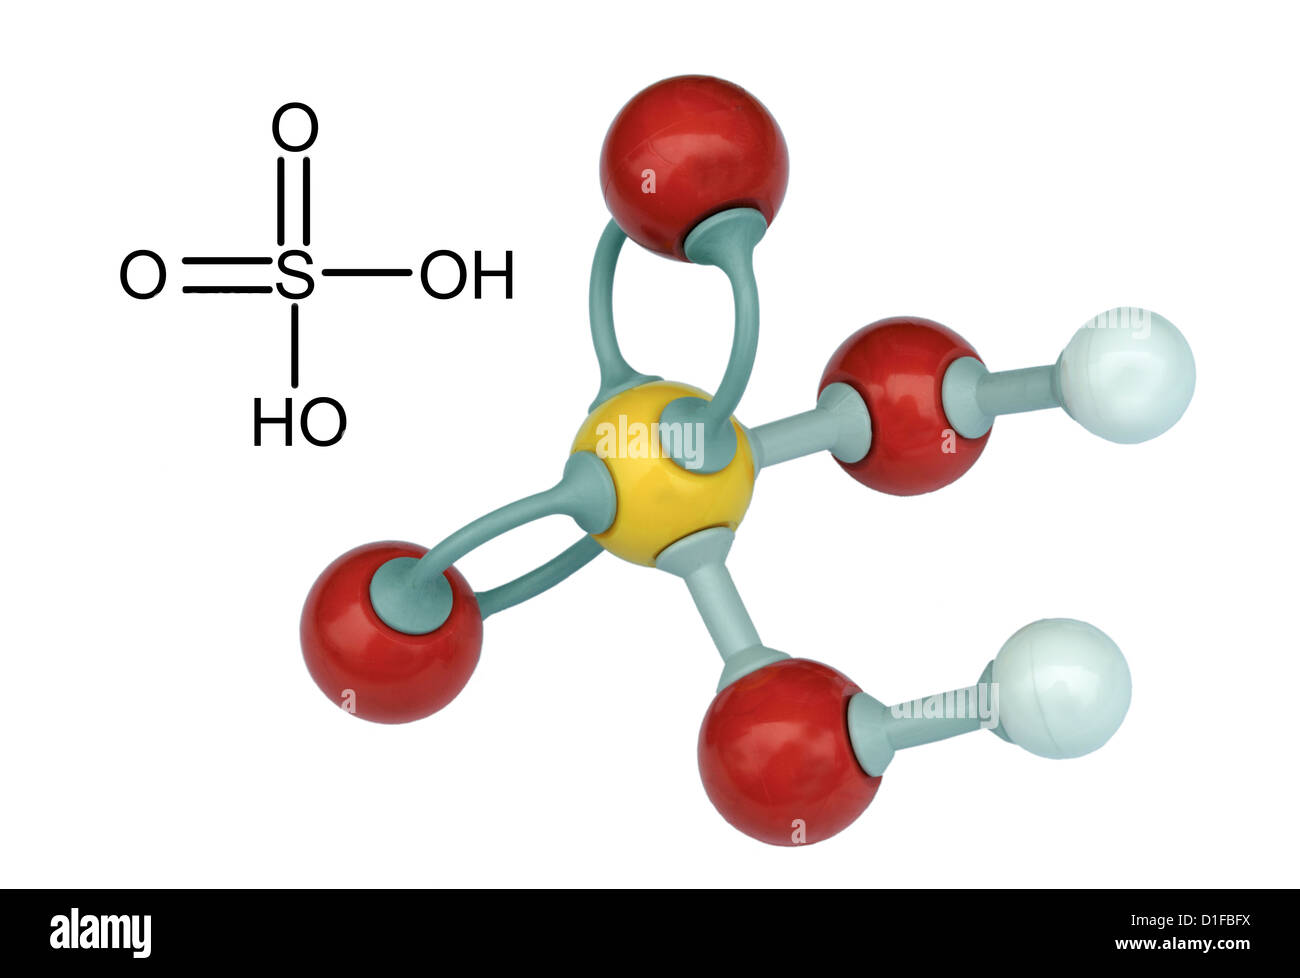 Molecular model of Sulphuric Acid - Stock Image